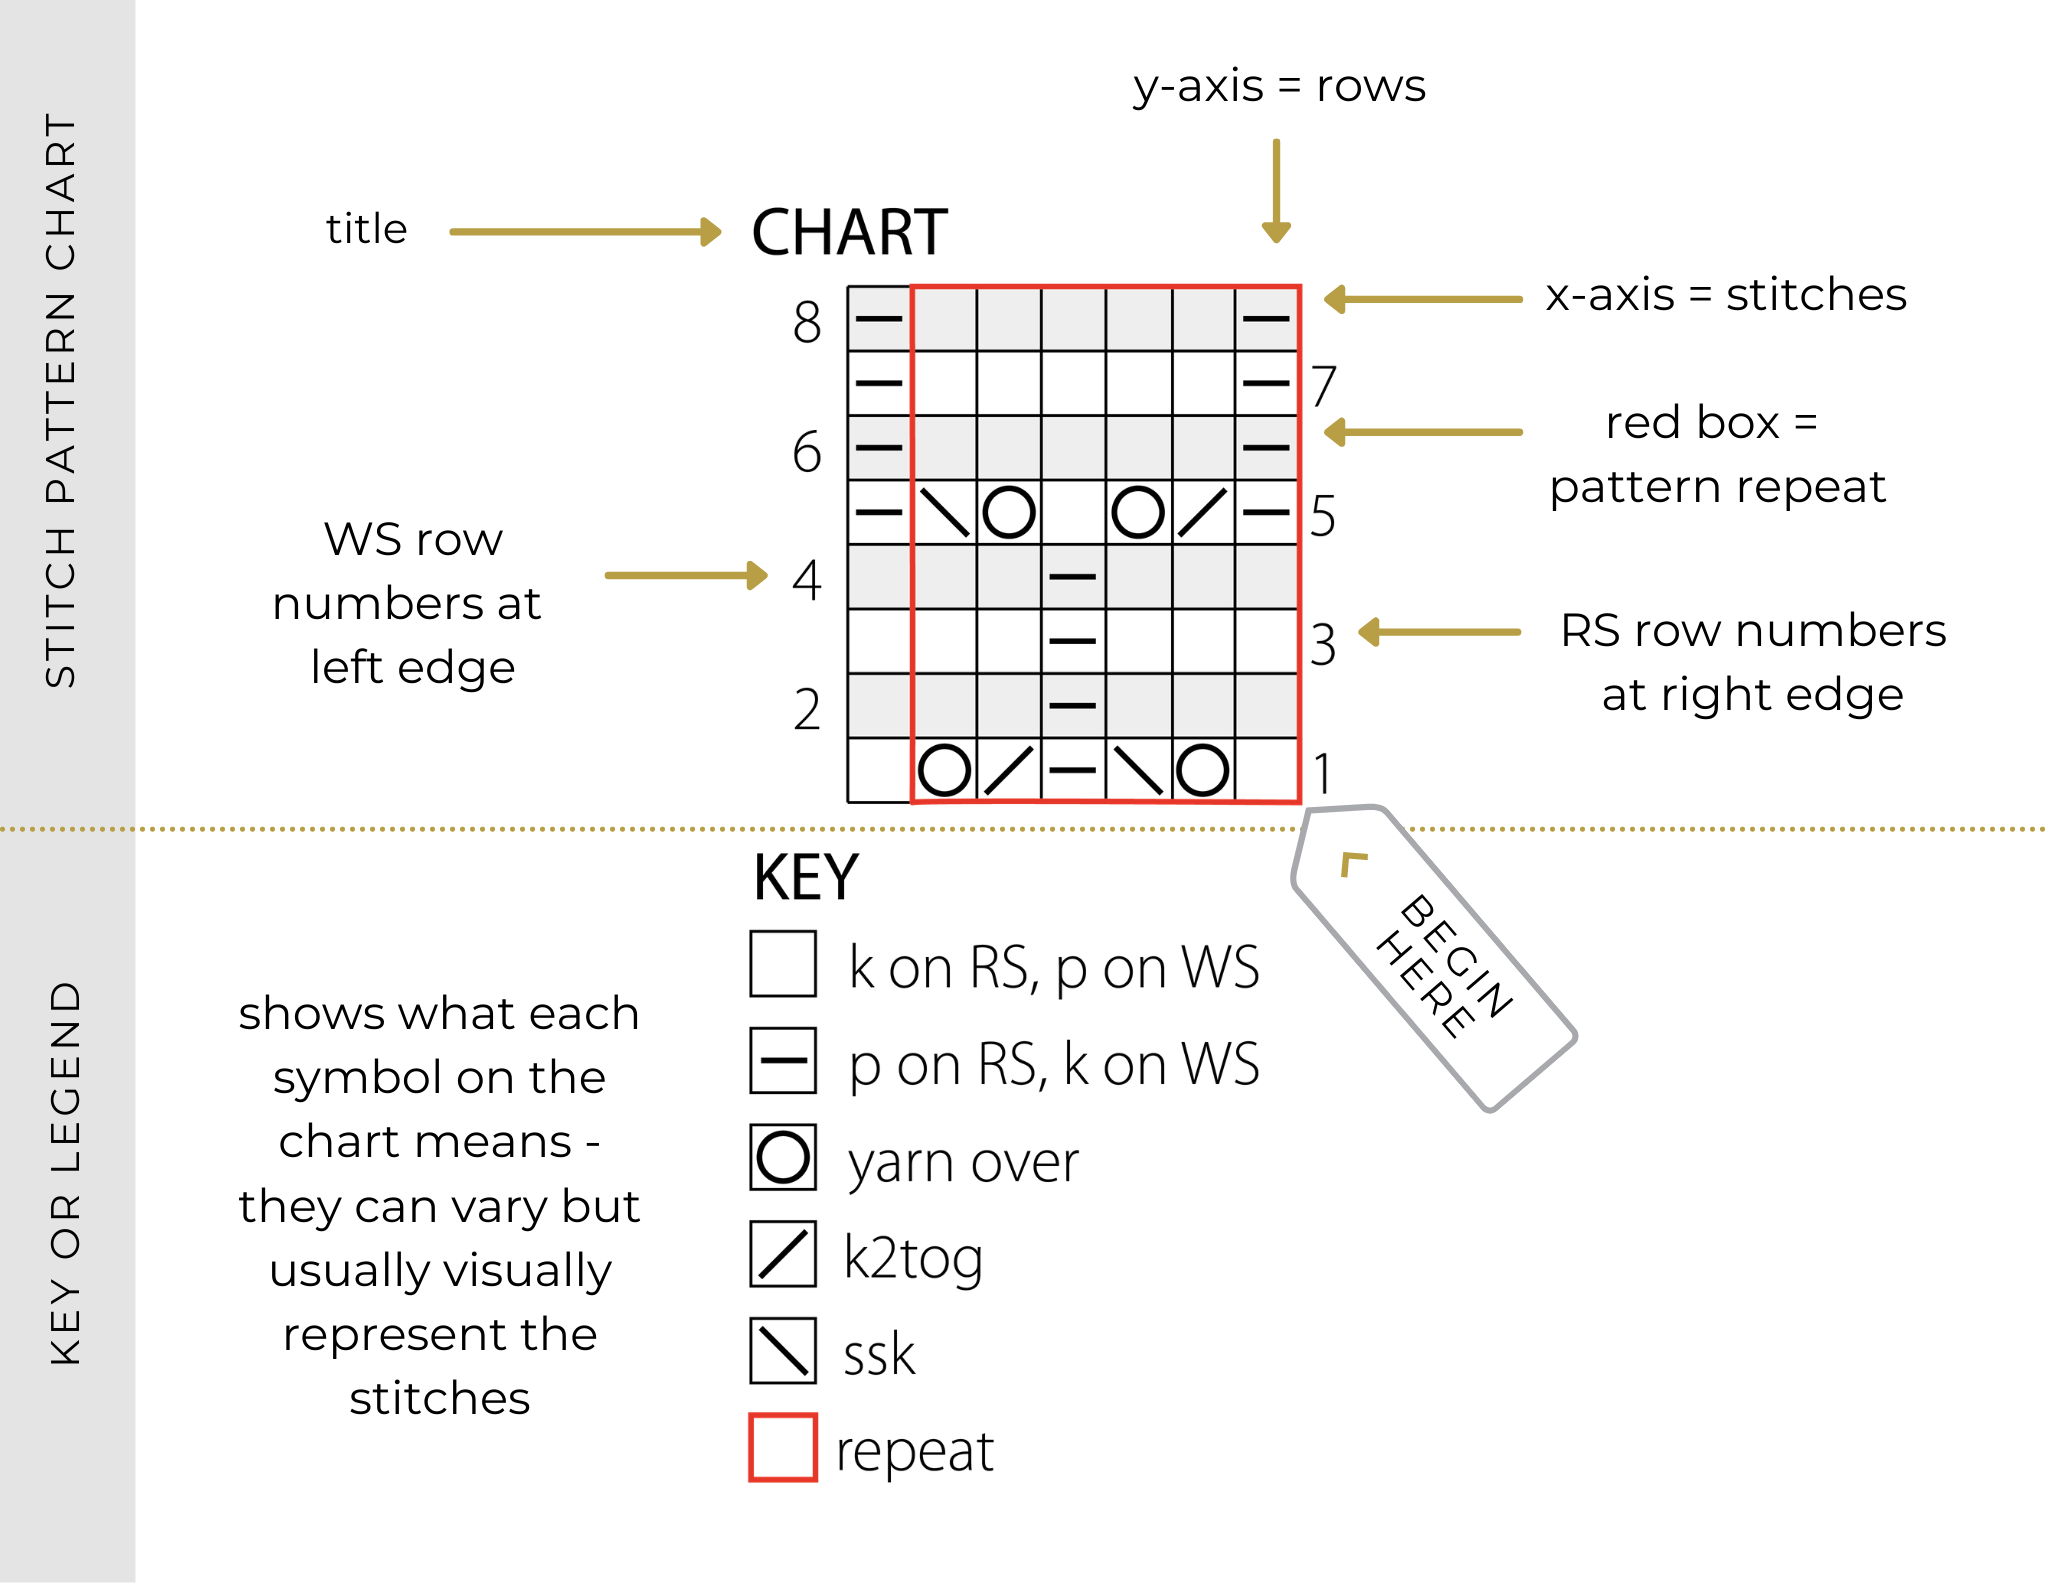 Chart screenshot with labels: title, legend/key, x-axis = stitches, y-axis = rows, red box = pattern repeat, grey box = no stitch, RS row numbers at right edge, WS row numbers at left edge, begin here arrow at bottom right corner